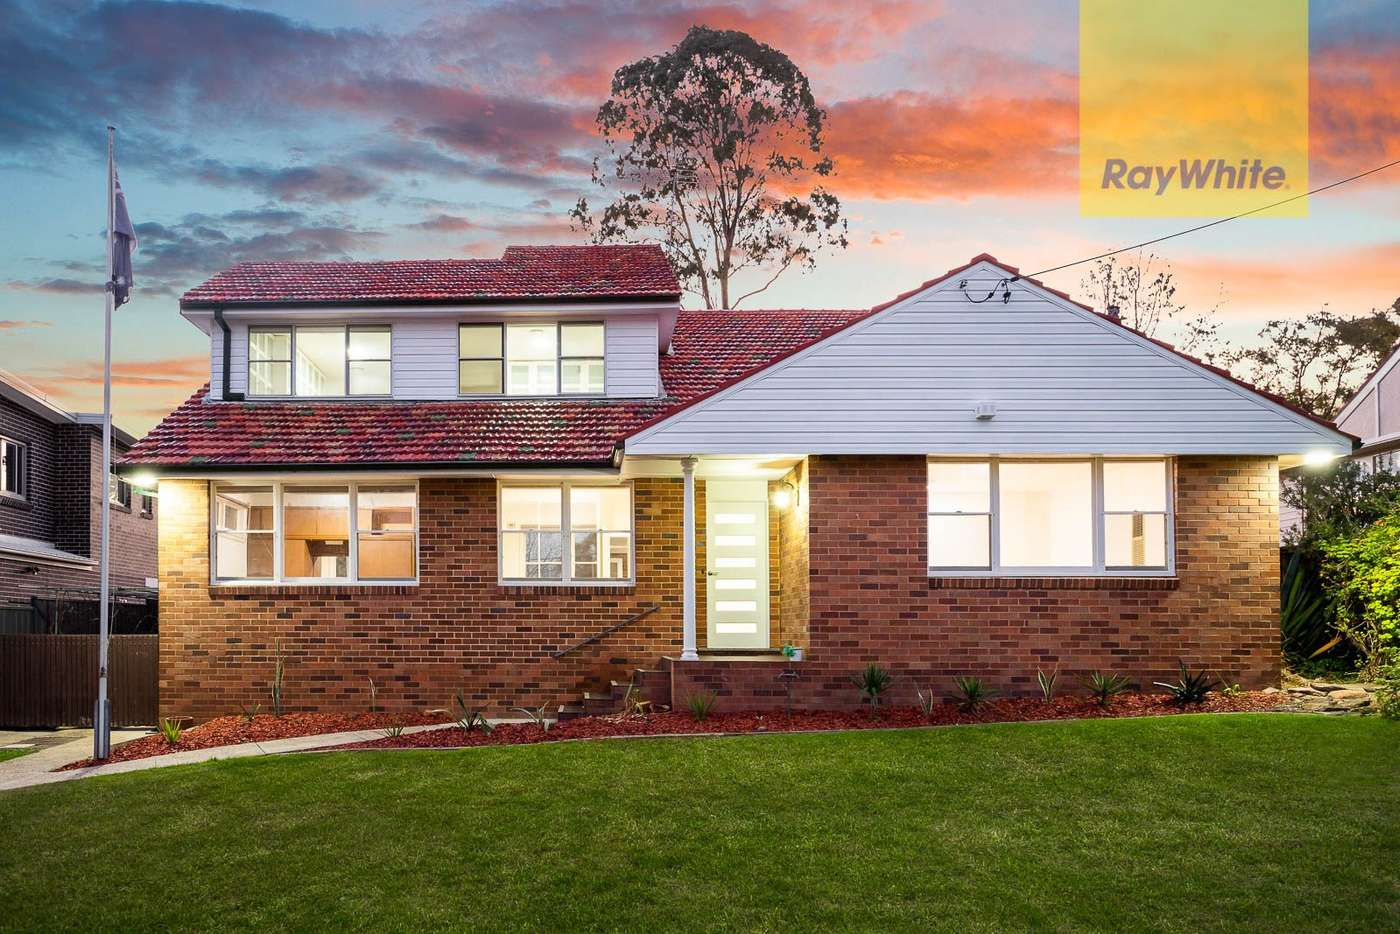 Main view of Homely house listing, 12 Warra Street, Wentworthville NSW 2145